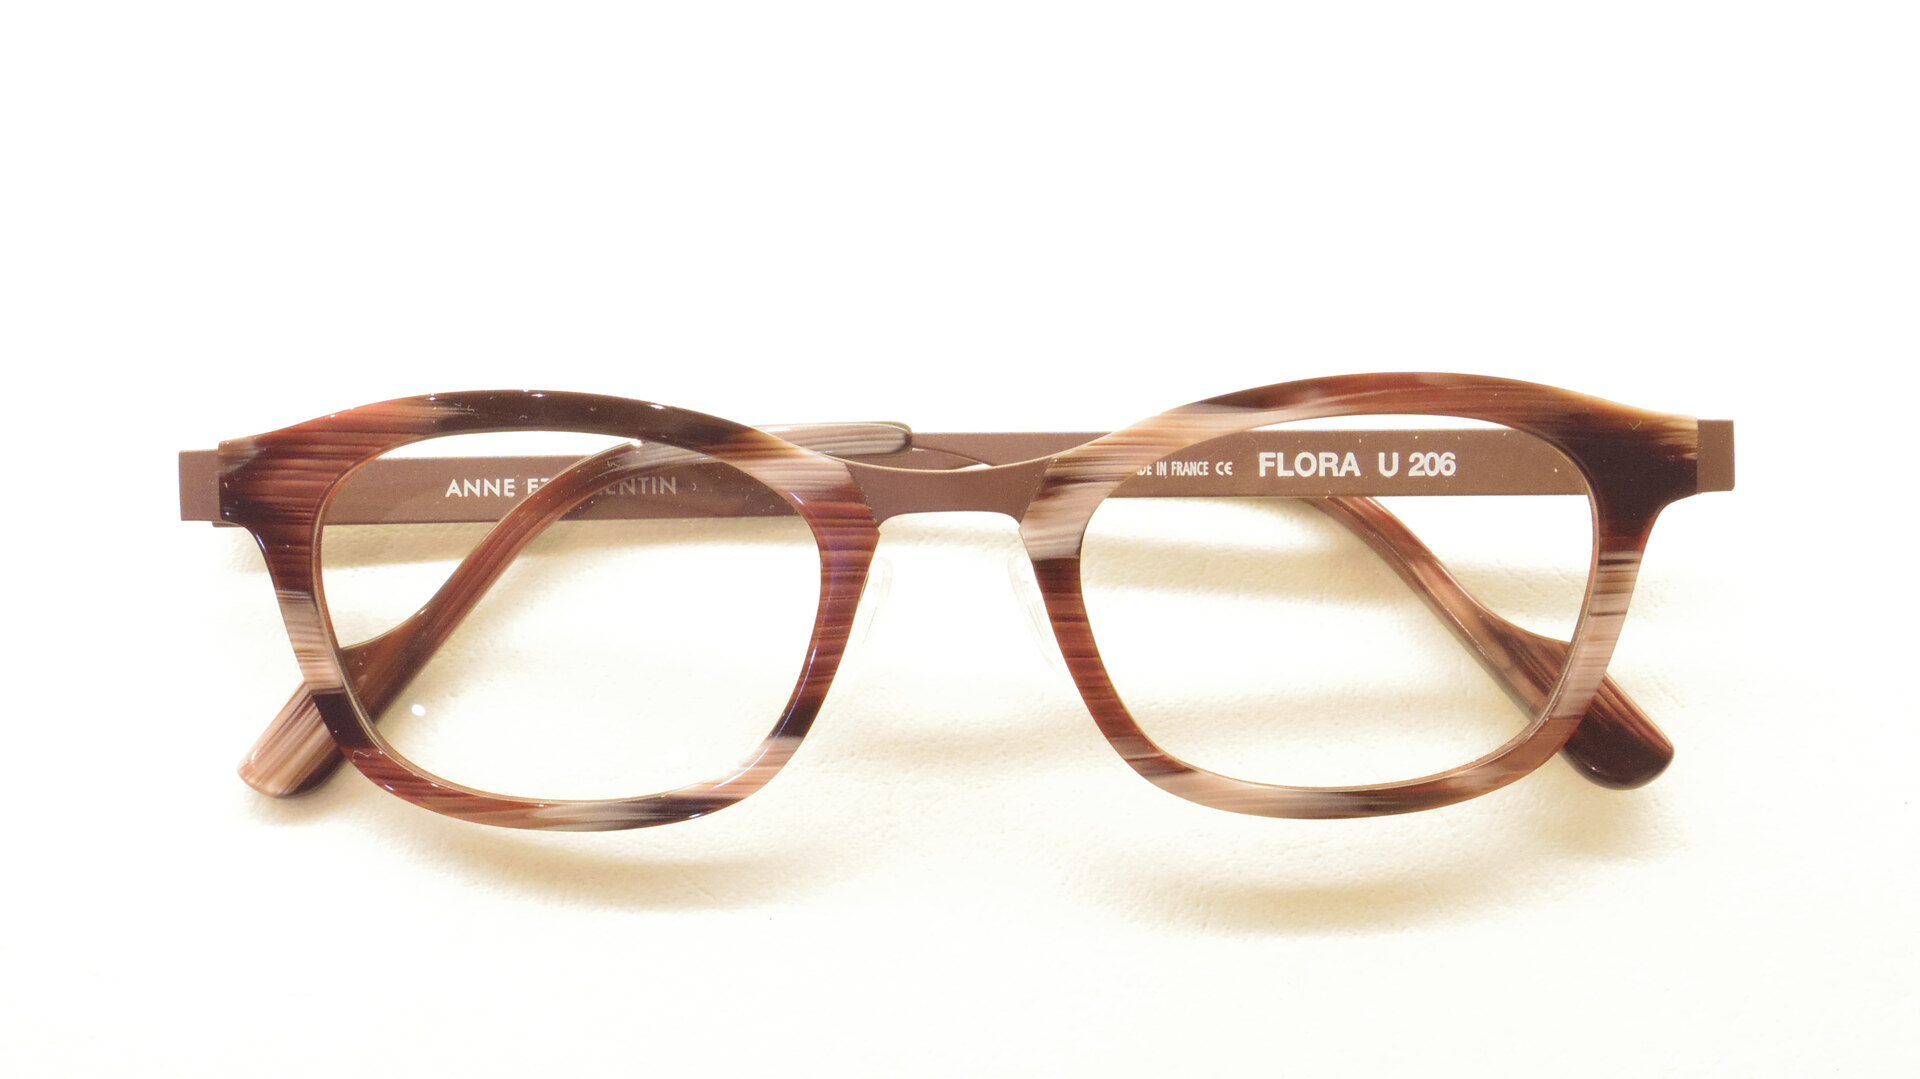 753a244ab8 Anne et Valentin Eyewear available at Hammond   Dummer Bespoke ...